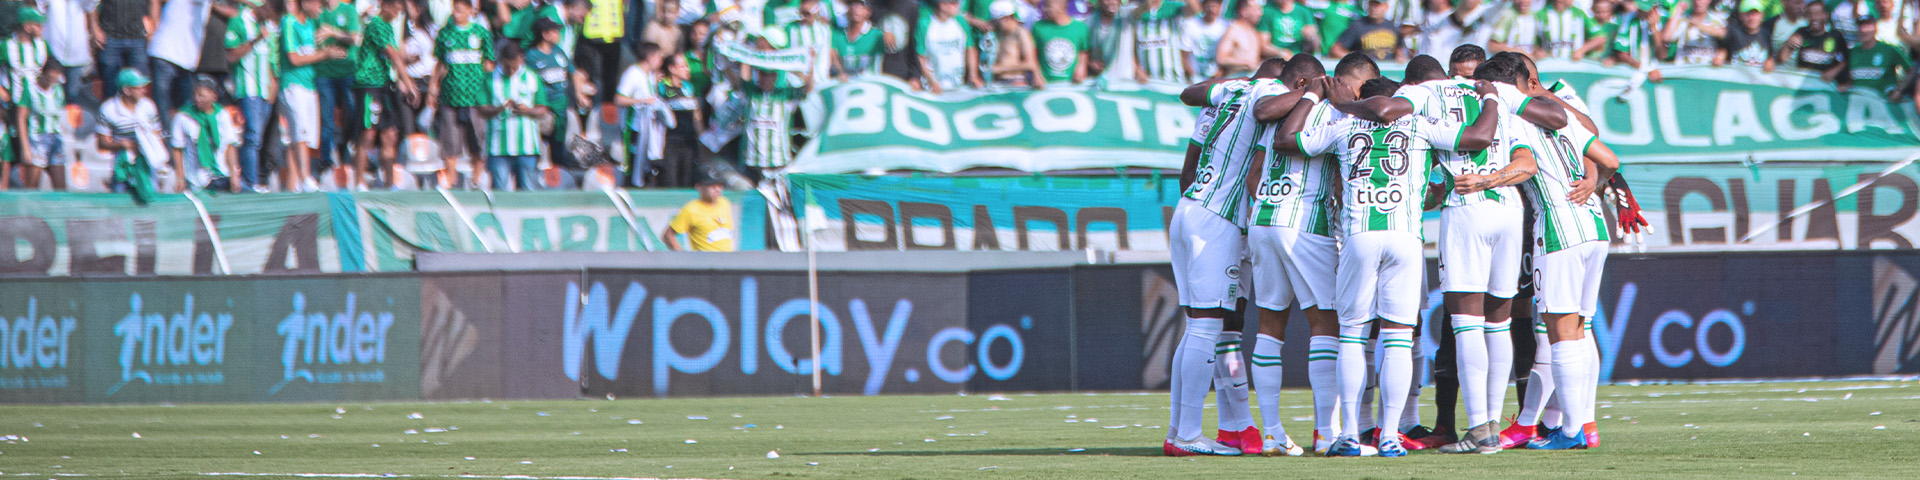 Players from Atlético Nacional, a major Colombian soccer club, stand together in the stadium with fans in the background